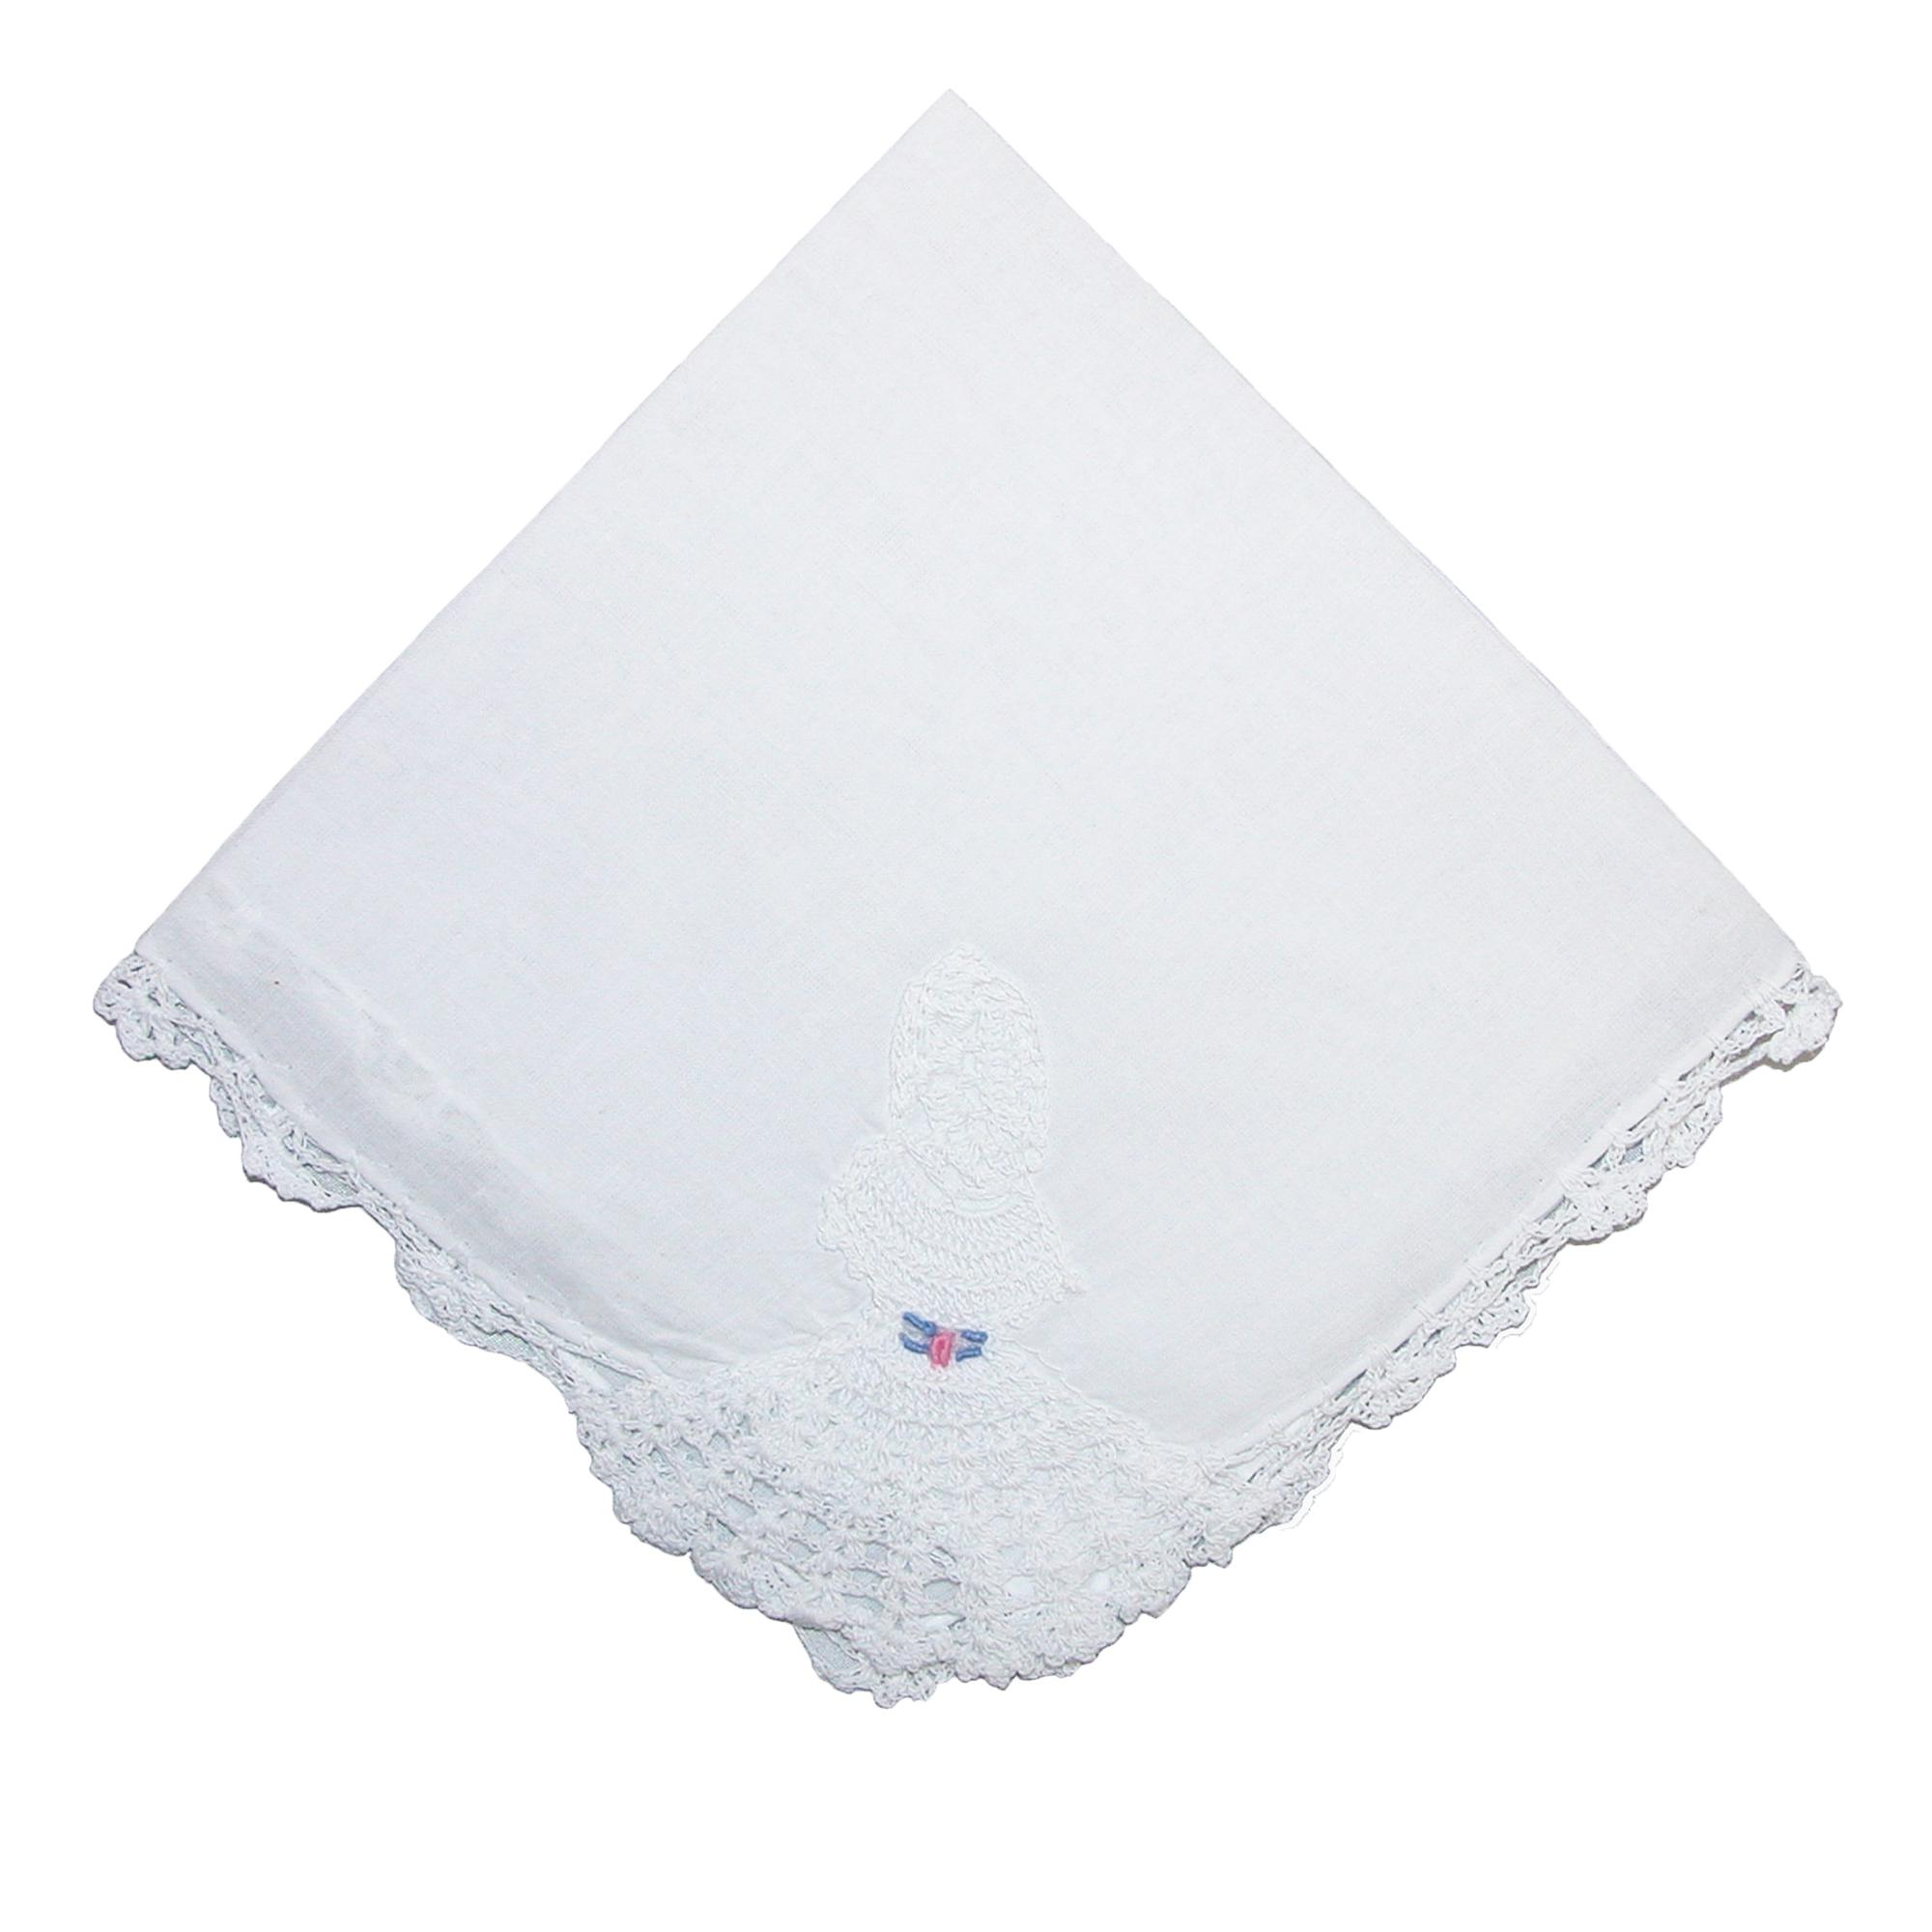 CTM Women's Cotton Crinoline Lady Lace Handkerchief